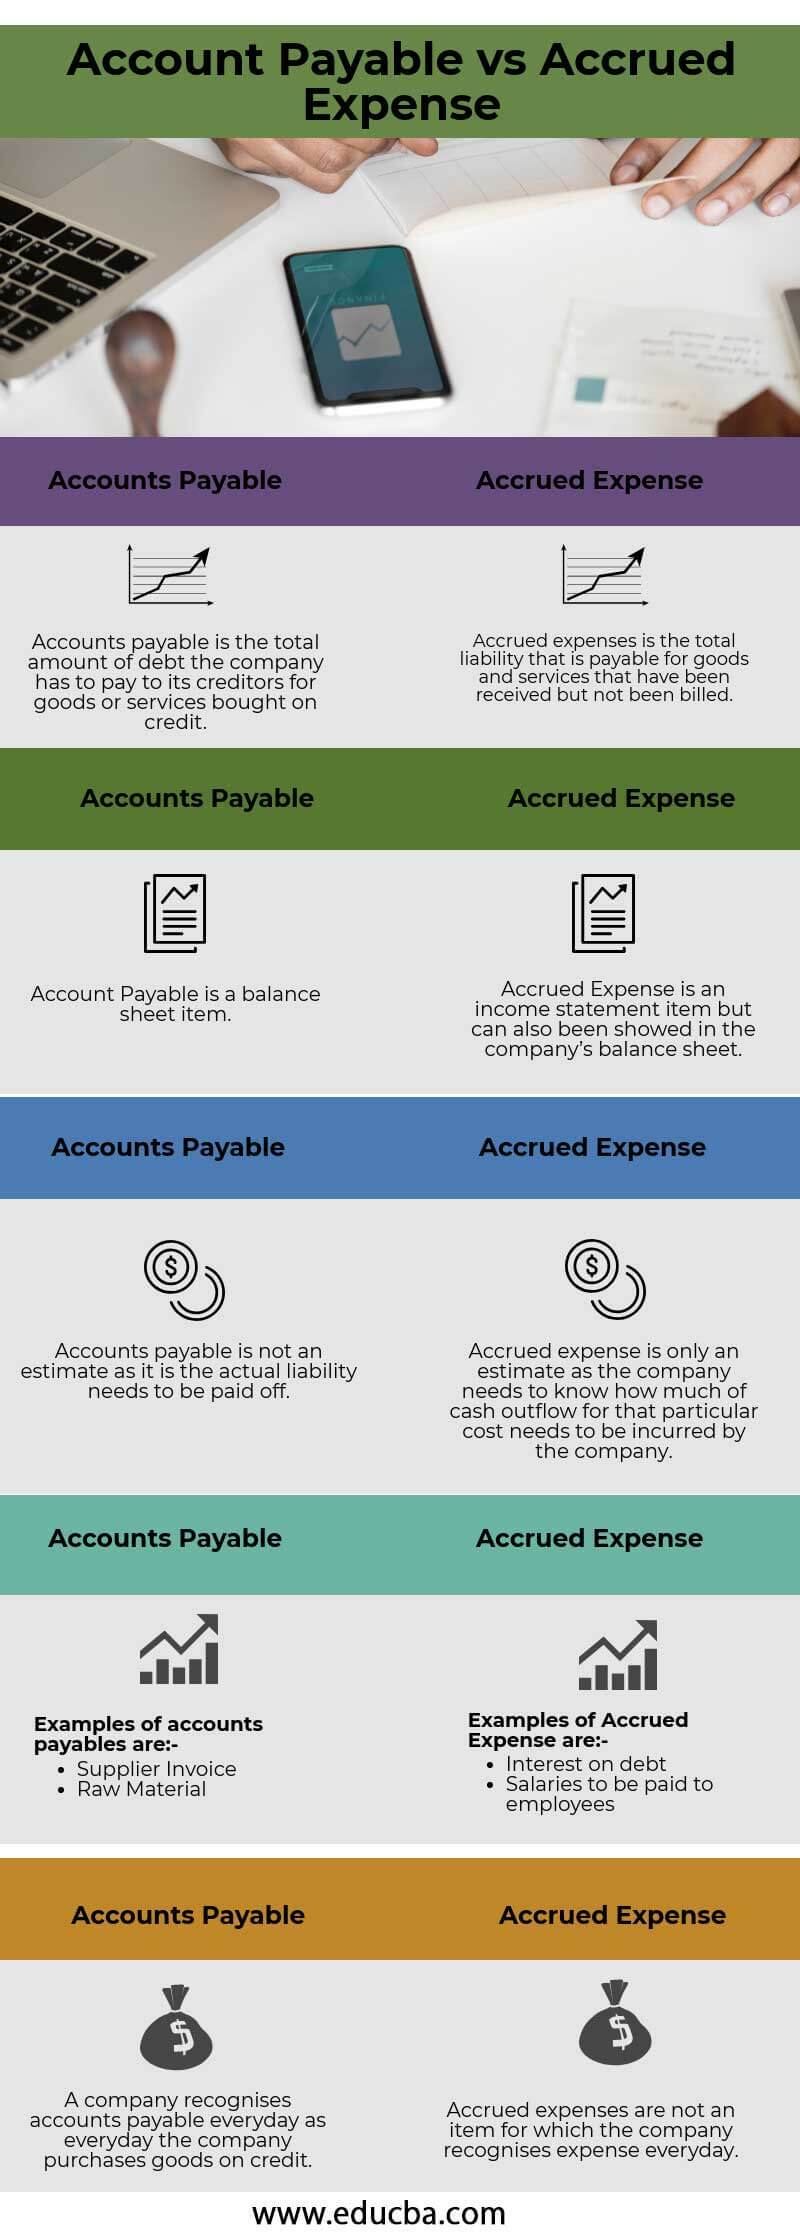 Account Payable vs Accrued Expense info